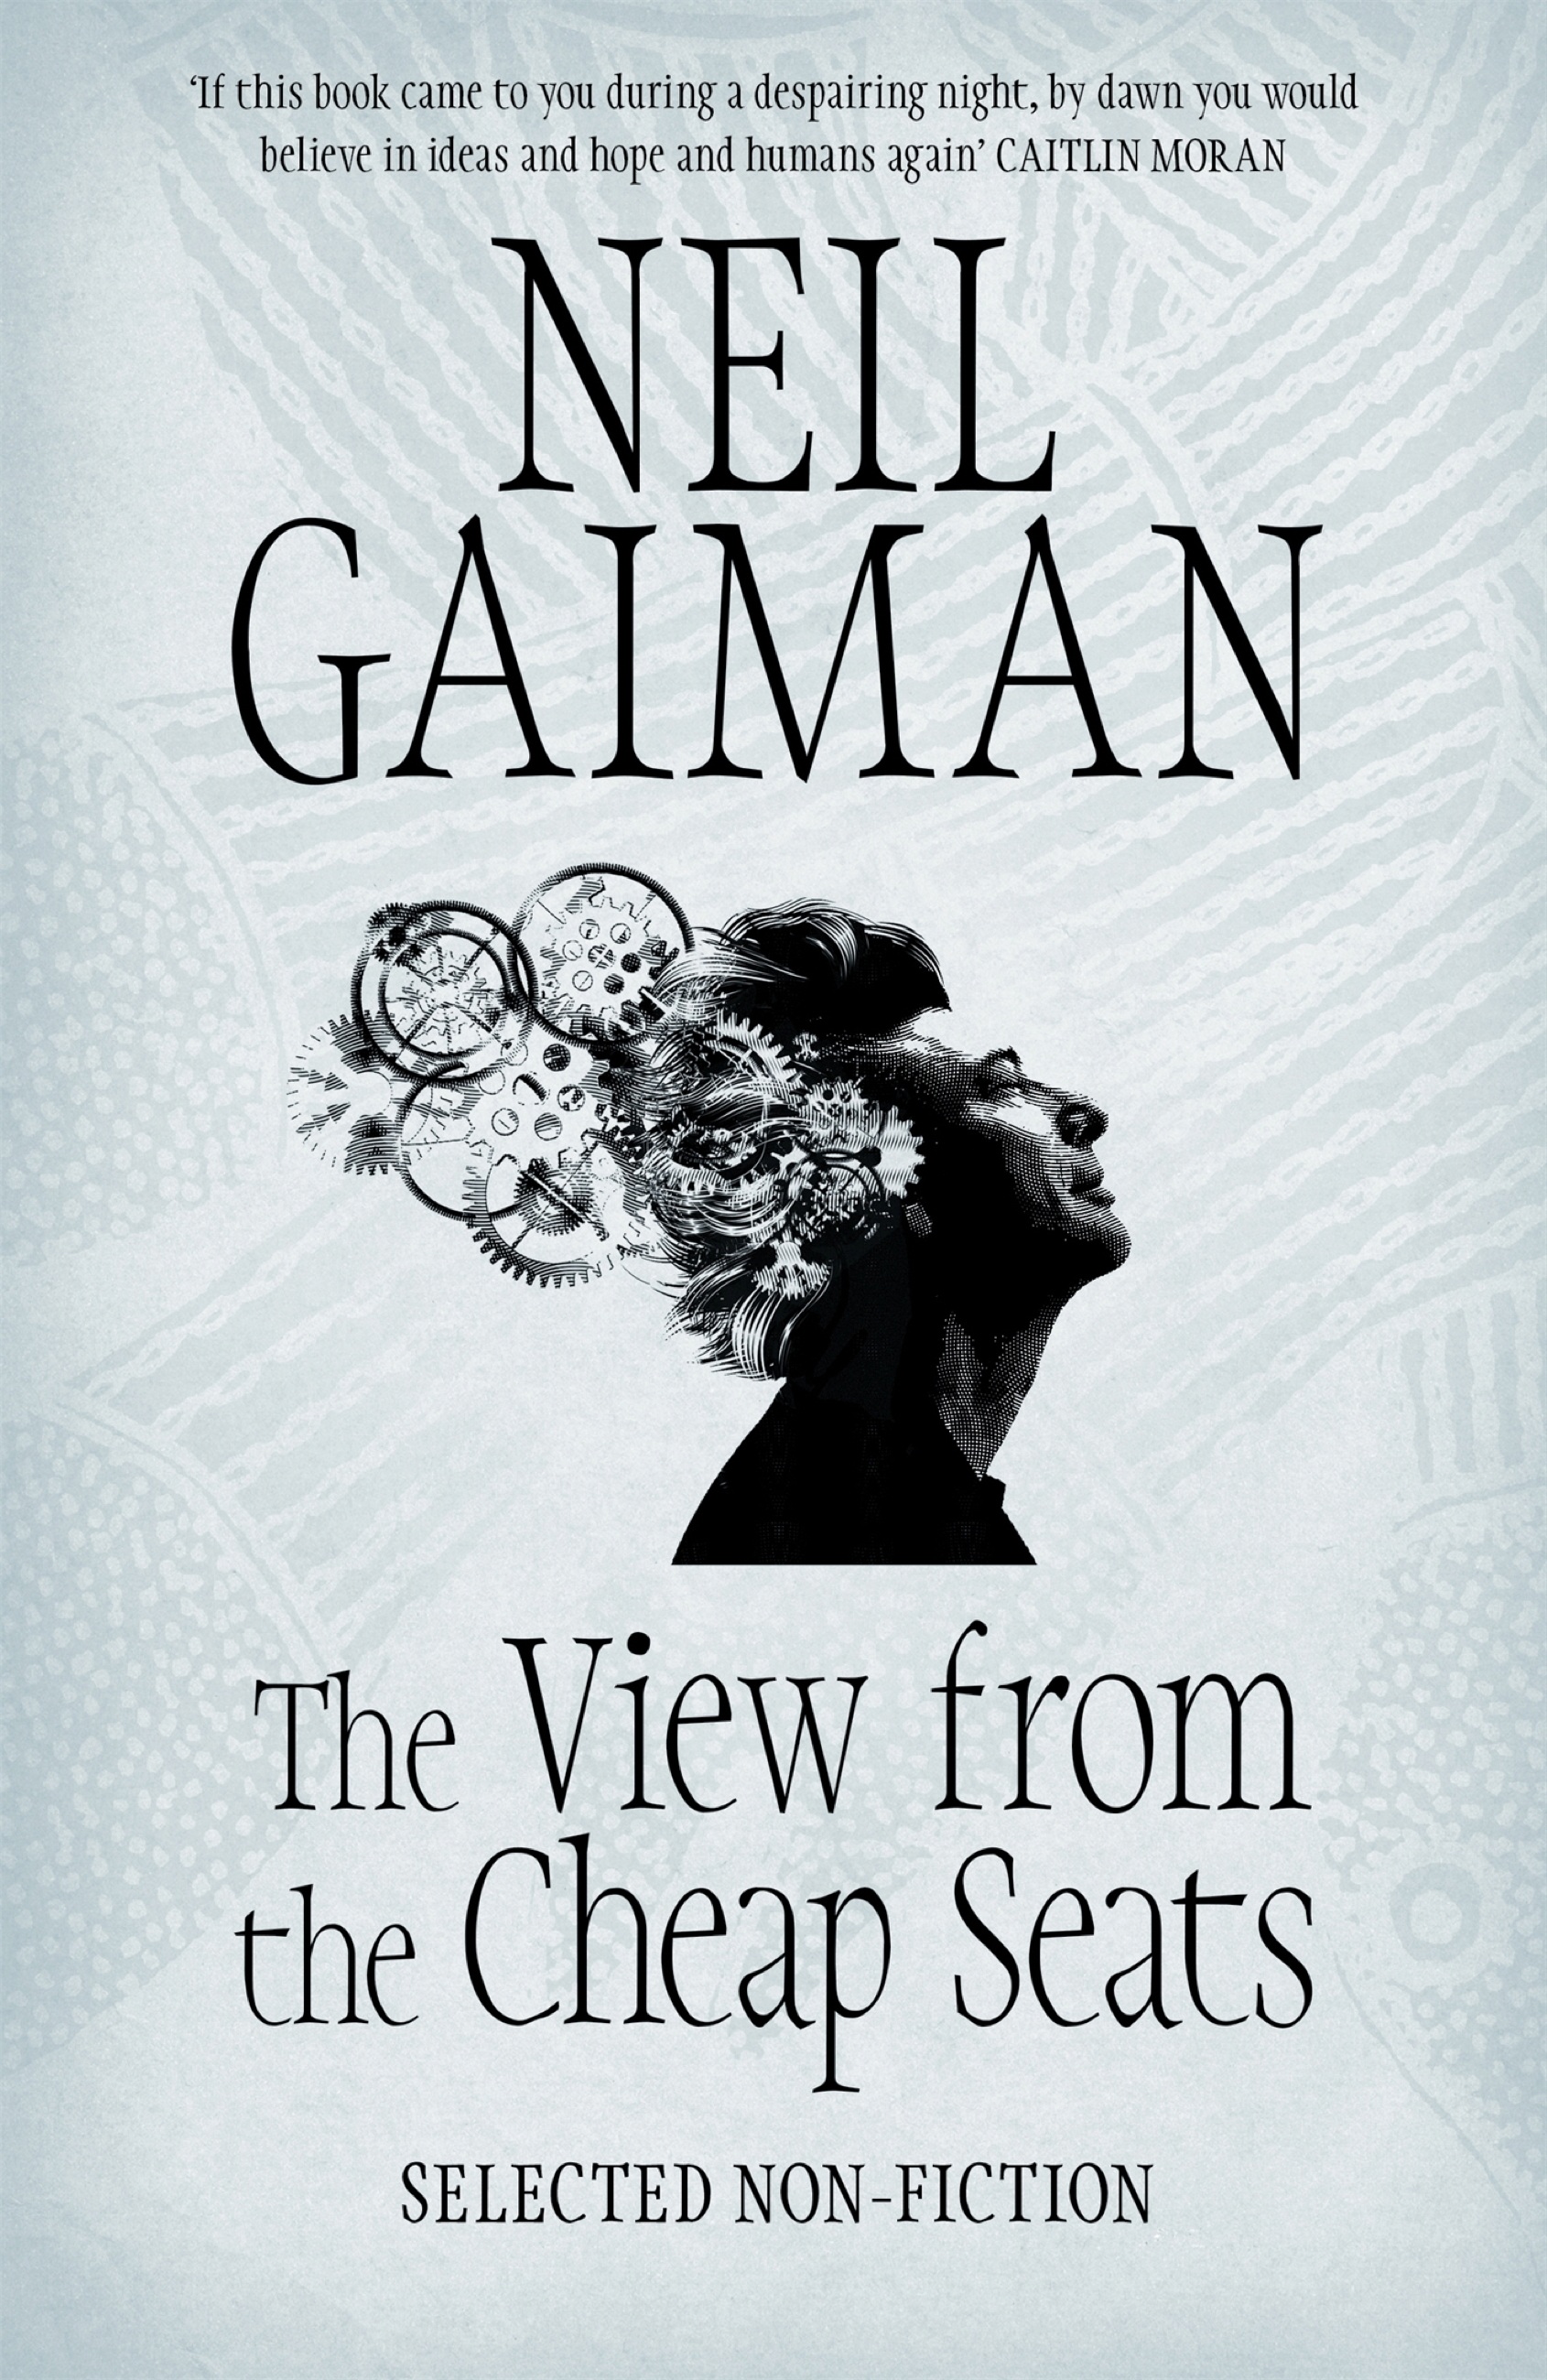 The View from the Cheap Seats